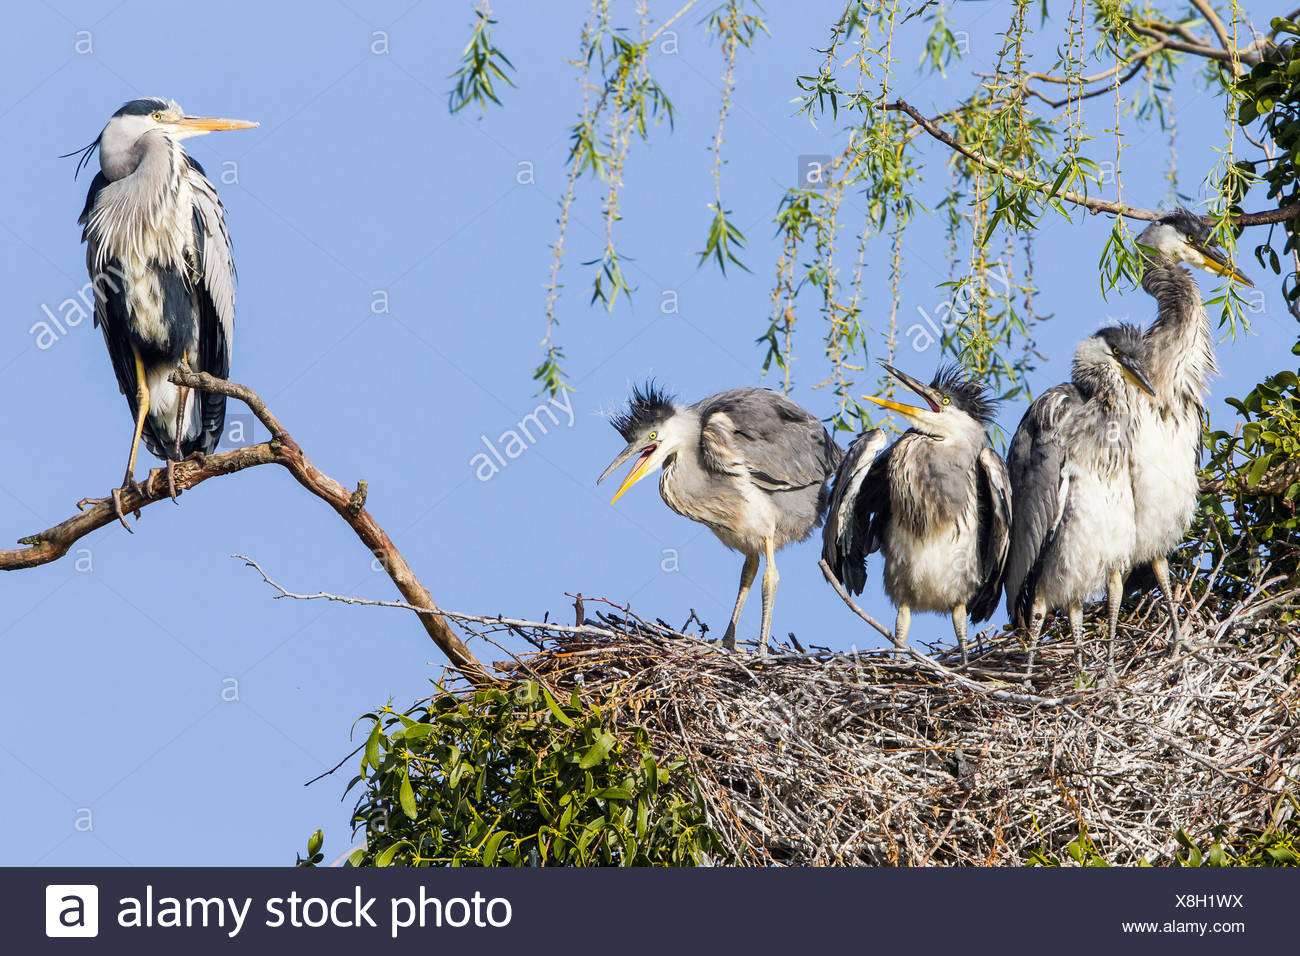 Grey Heron (Ardea cinerea), young birds in a nest with an adult bird, Lower Saxony, Germany - Stock Image